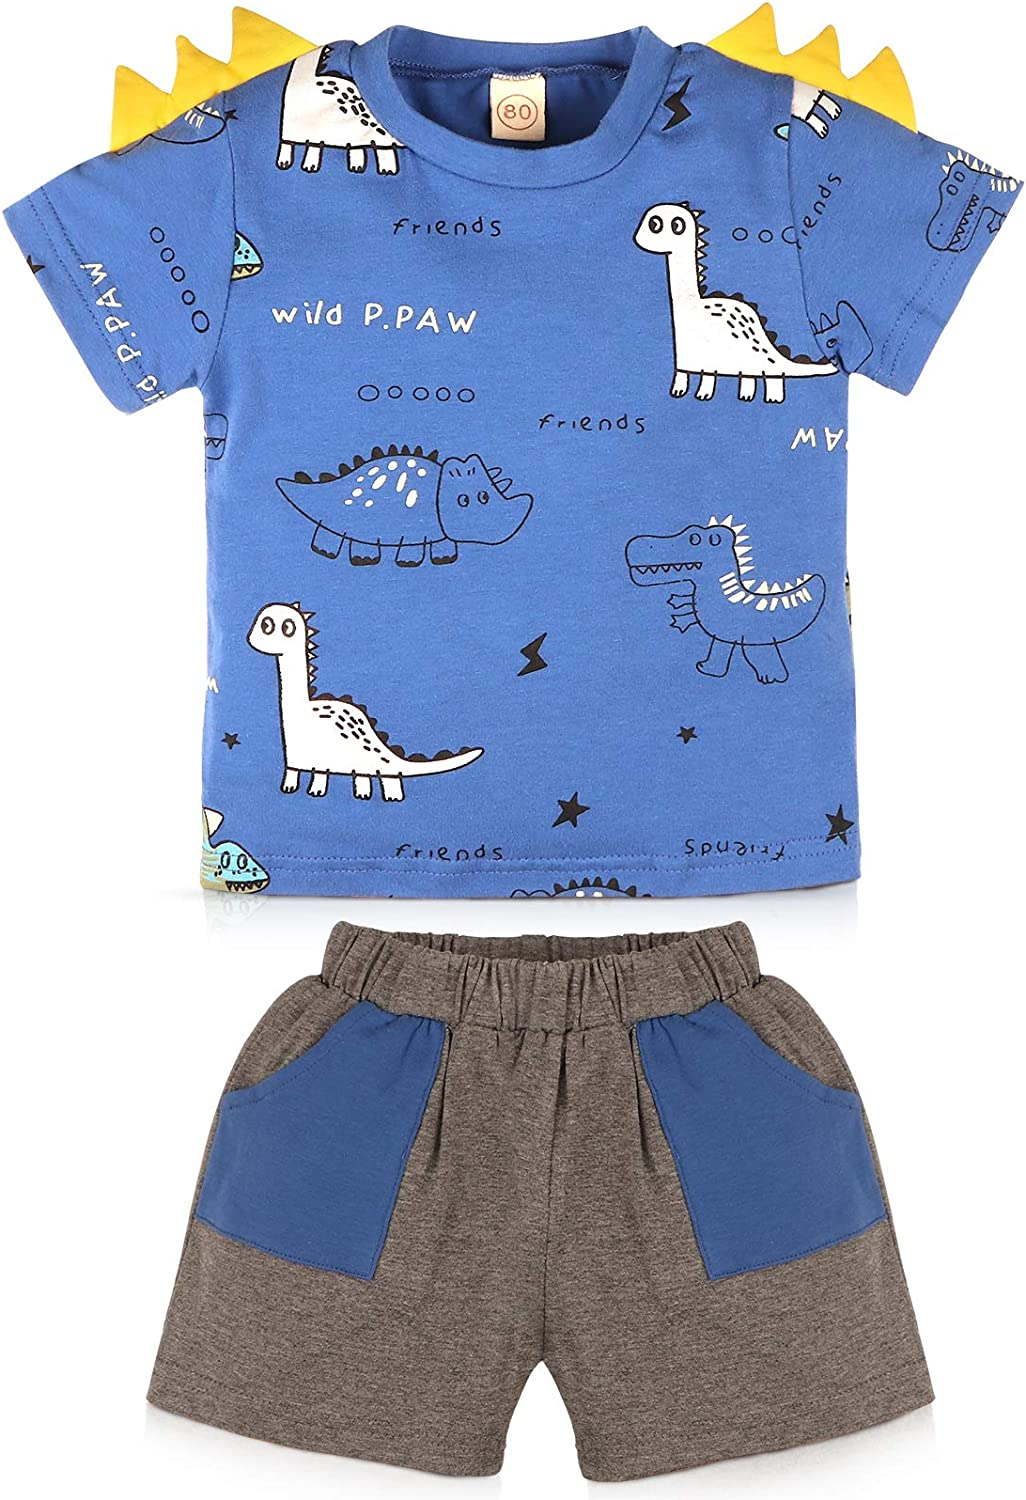 Leccod Toddler Baby Boy Spring Summer Clothes Outfits Short Sleeve Dinosaur T-Shirt Top and Pants Set